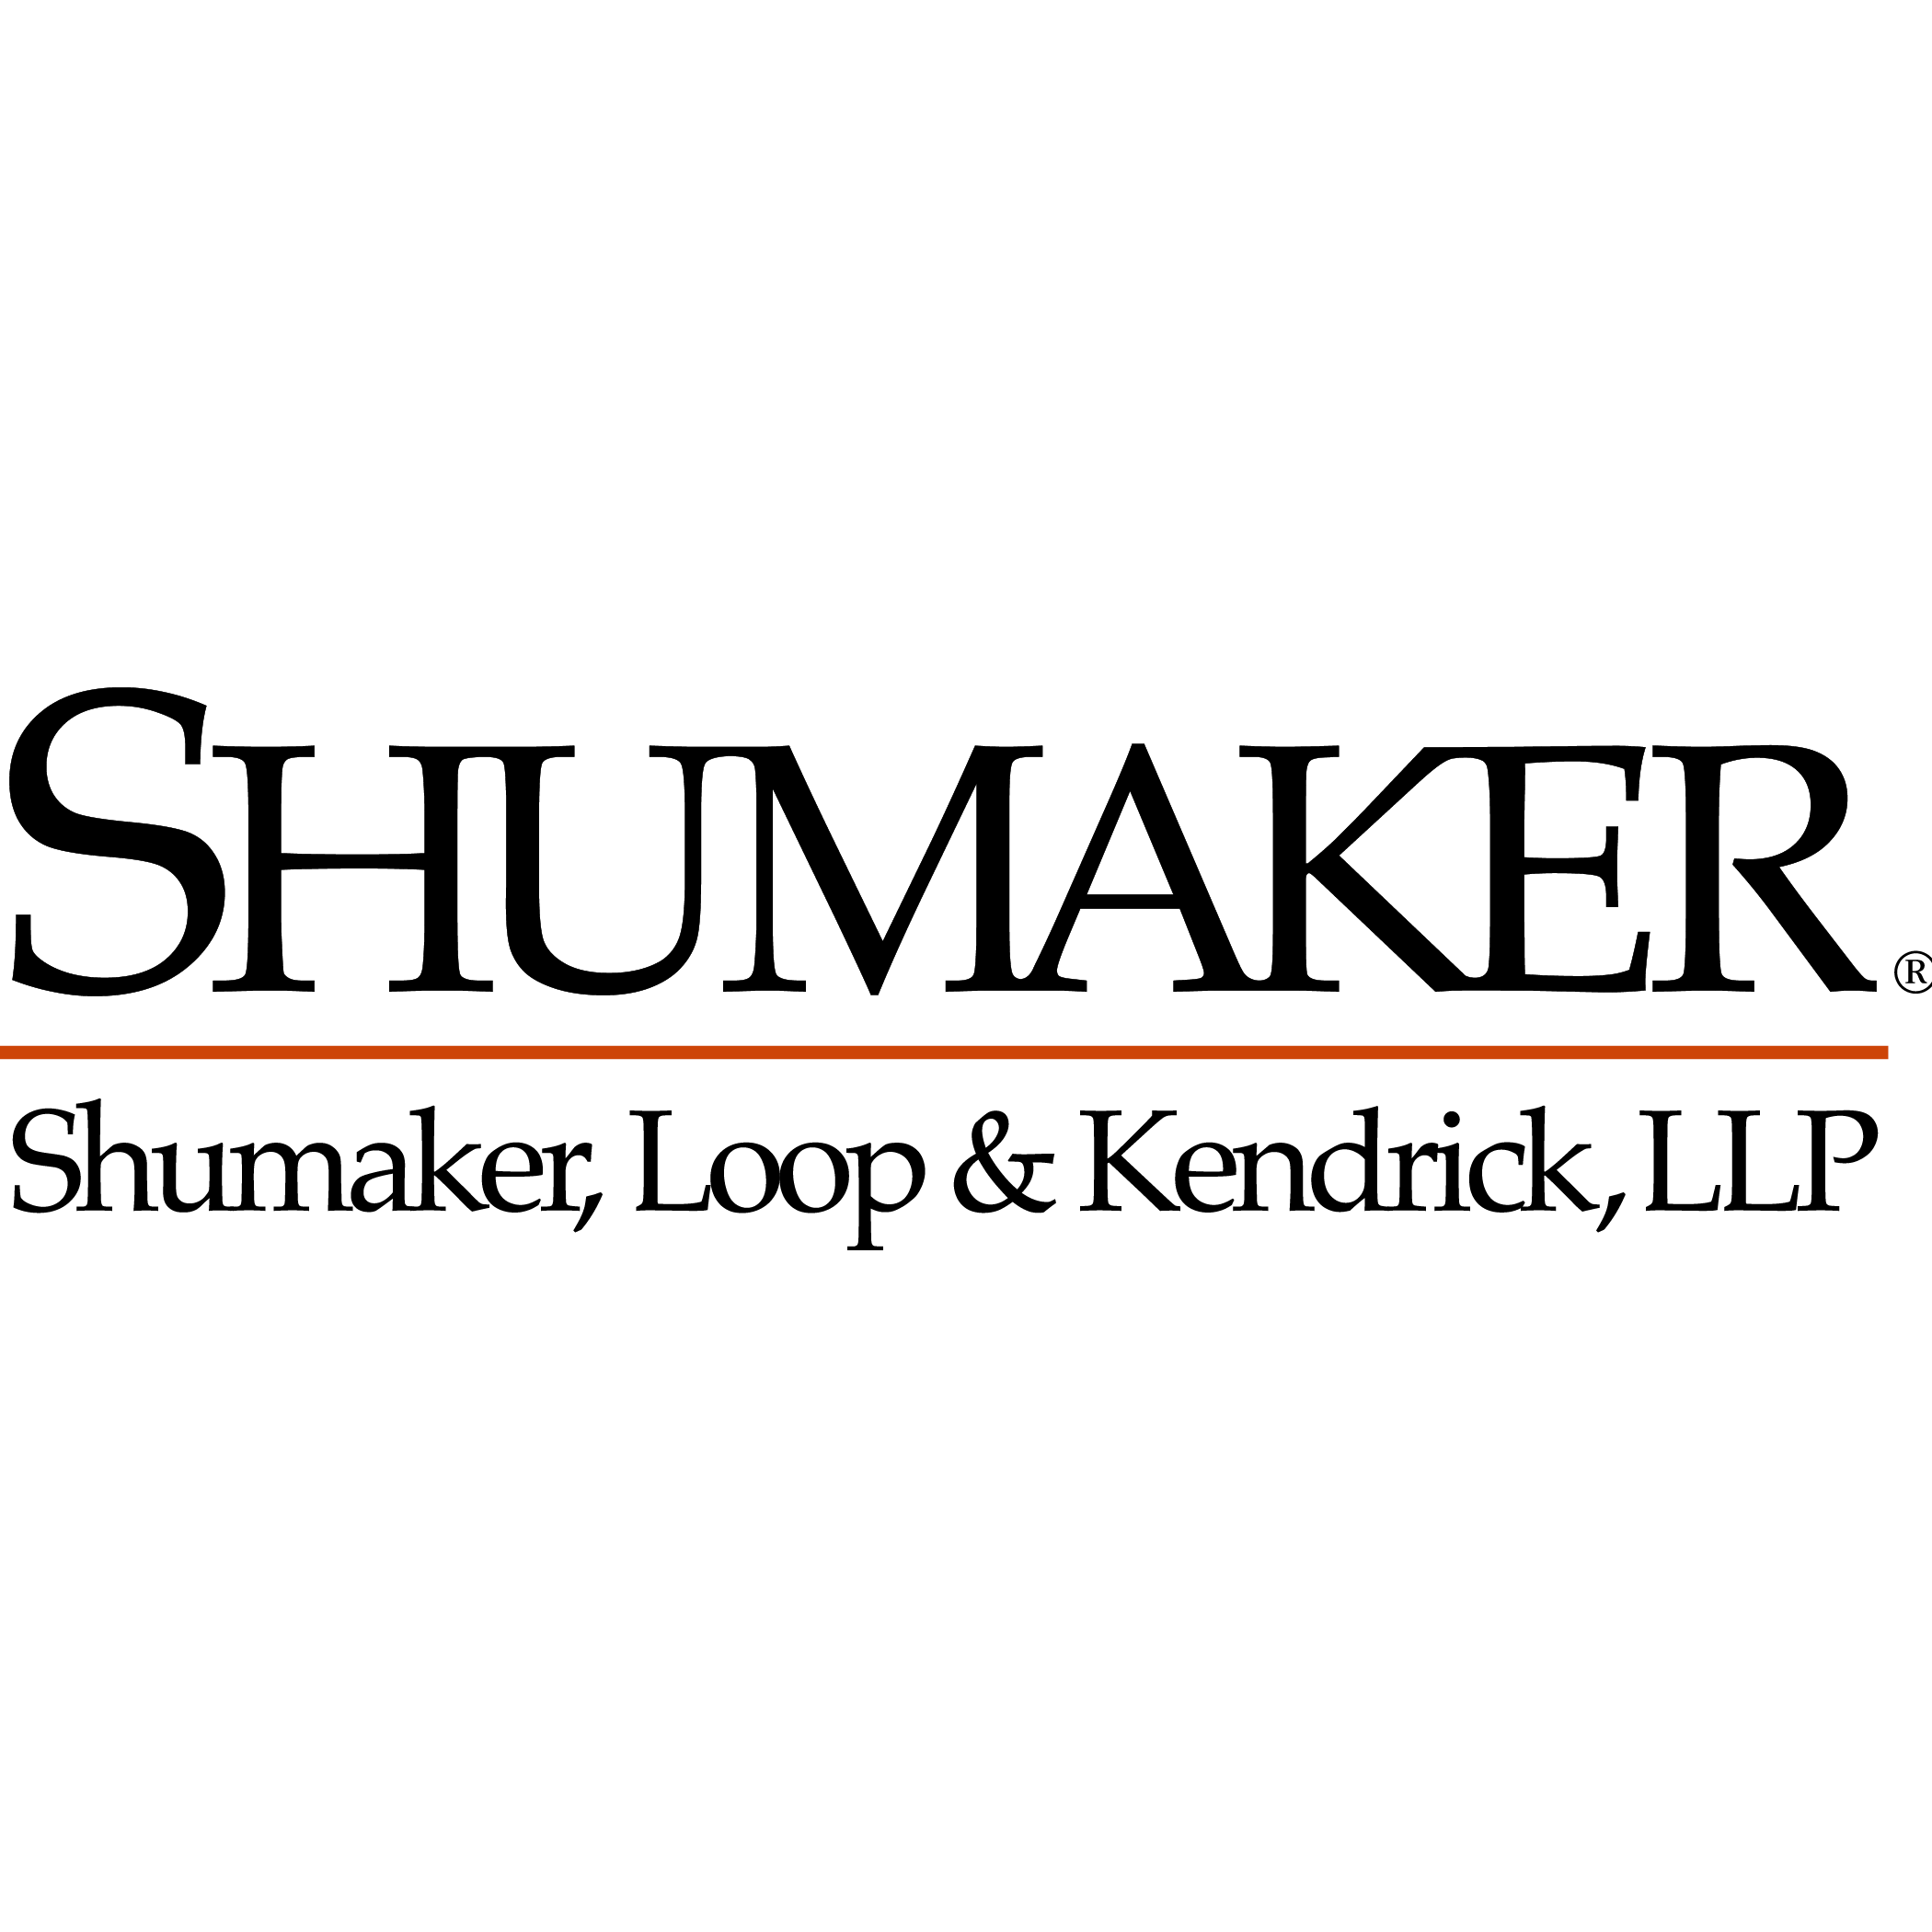 photo of Shumaker, Loop & Kendrick, LLP